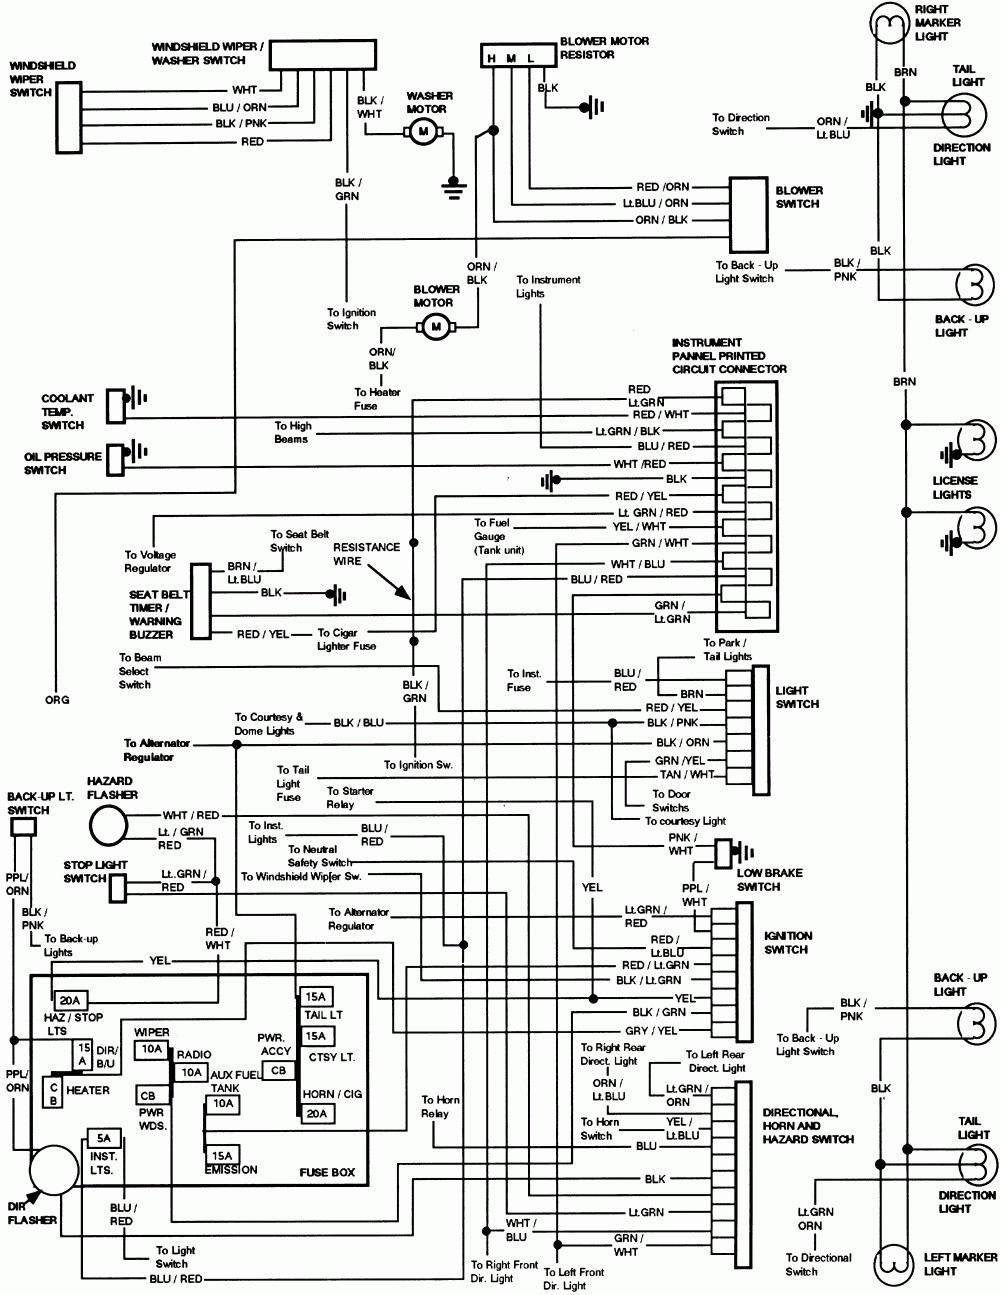 hight resolution of 91 f150 wiring diagram schematic wiring diagram blog 91 f150 engine diagram